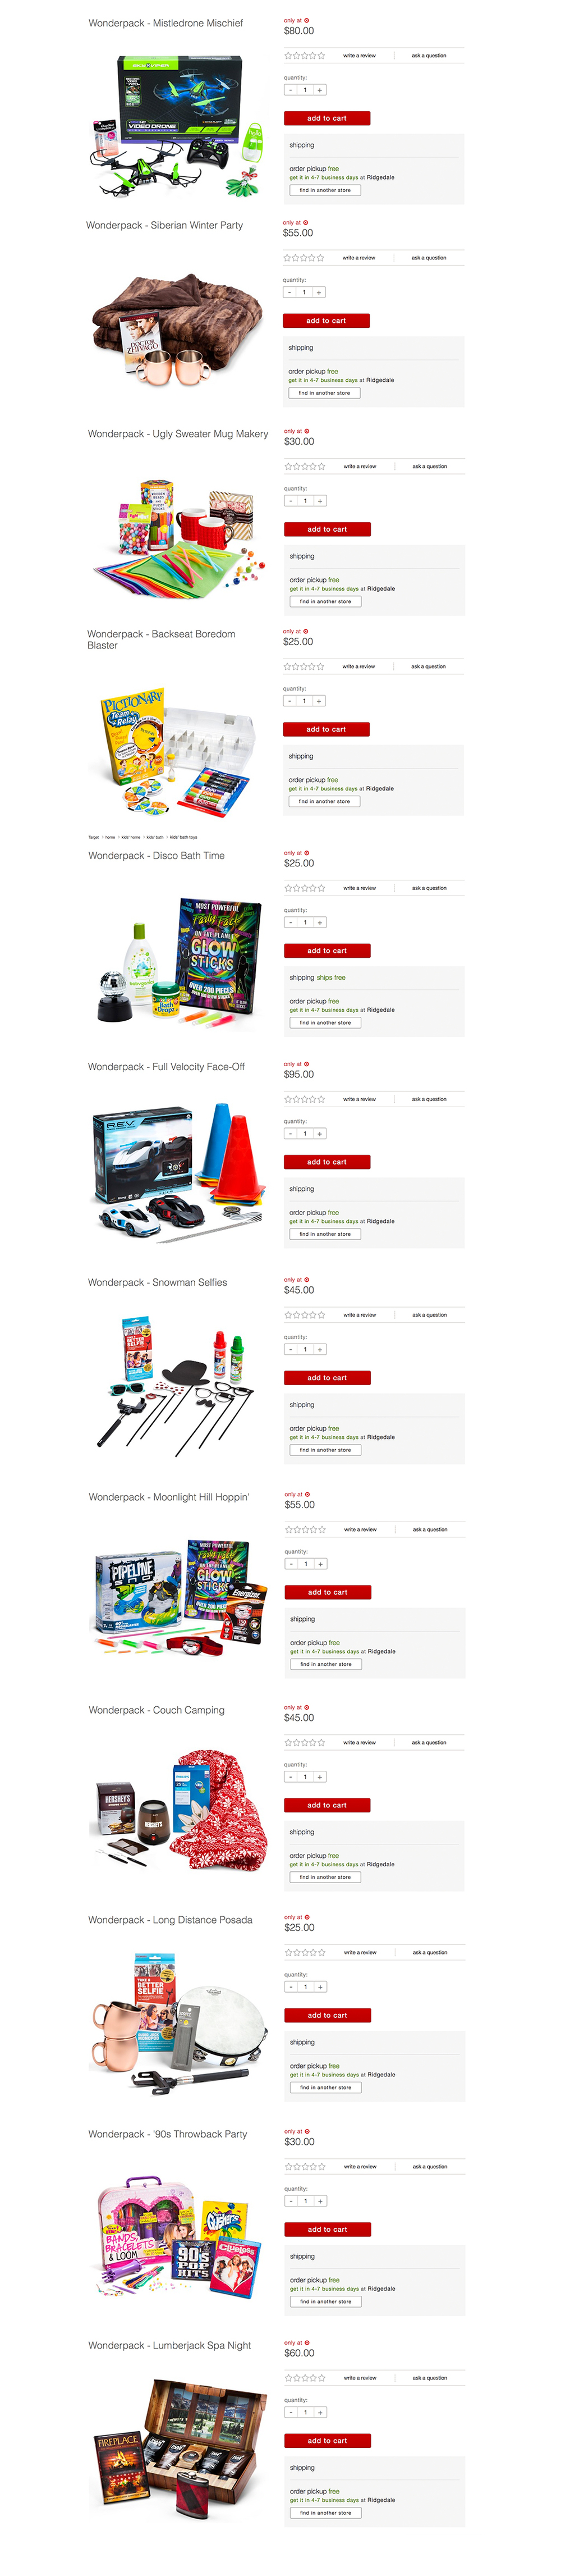 I had the ability to control what the Target.com image looked like, allowing me to clearly showcase what products come in each Wonderpack.